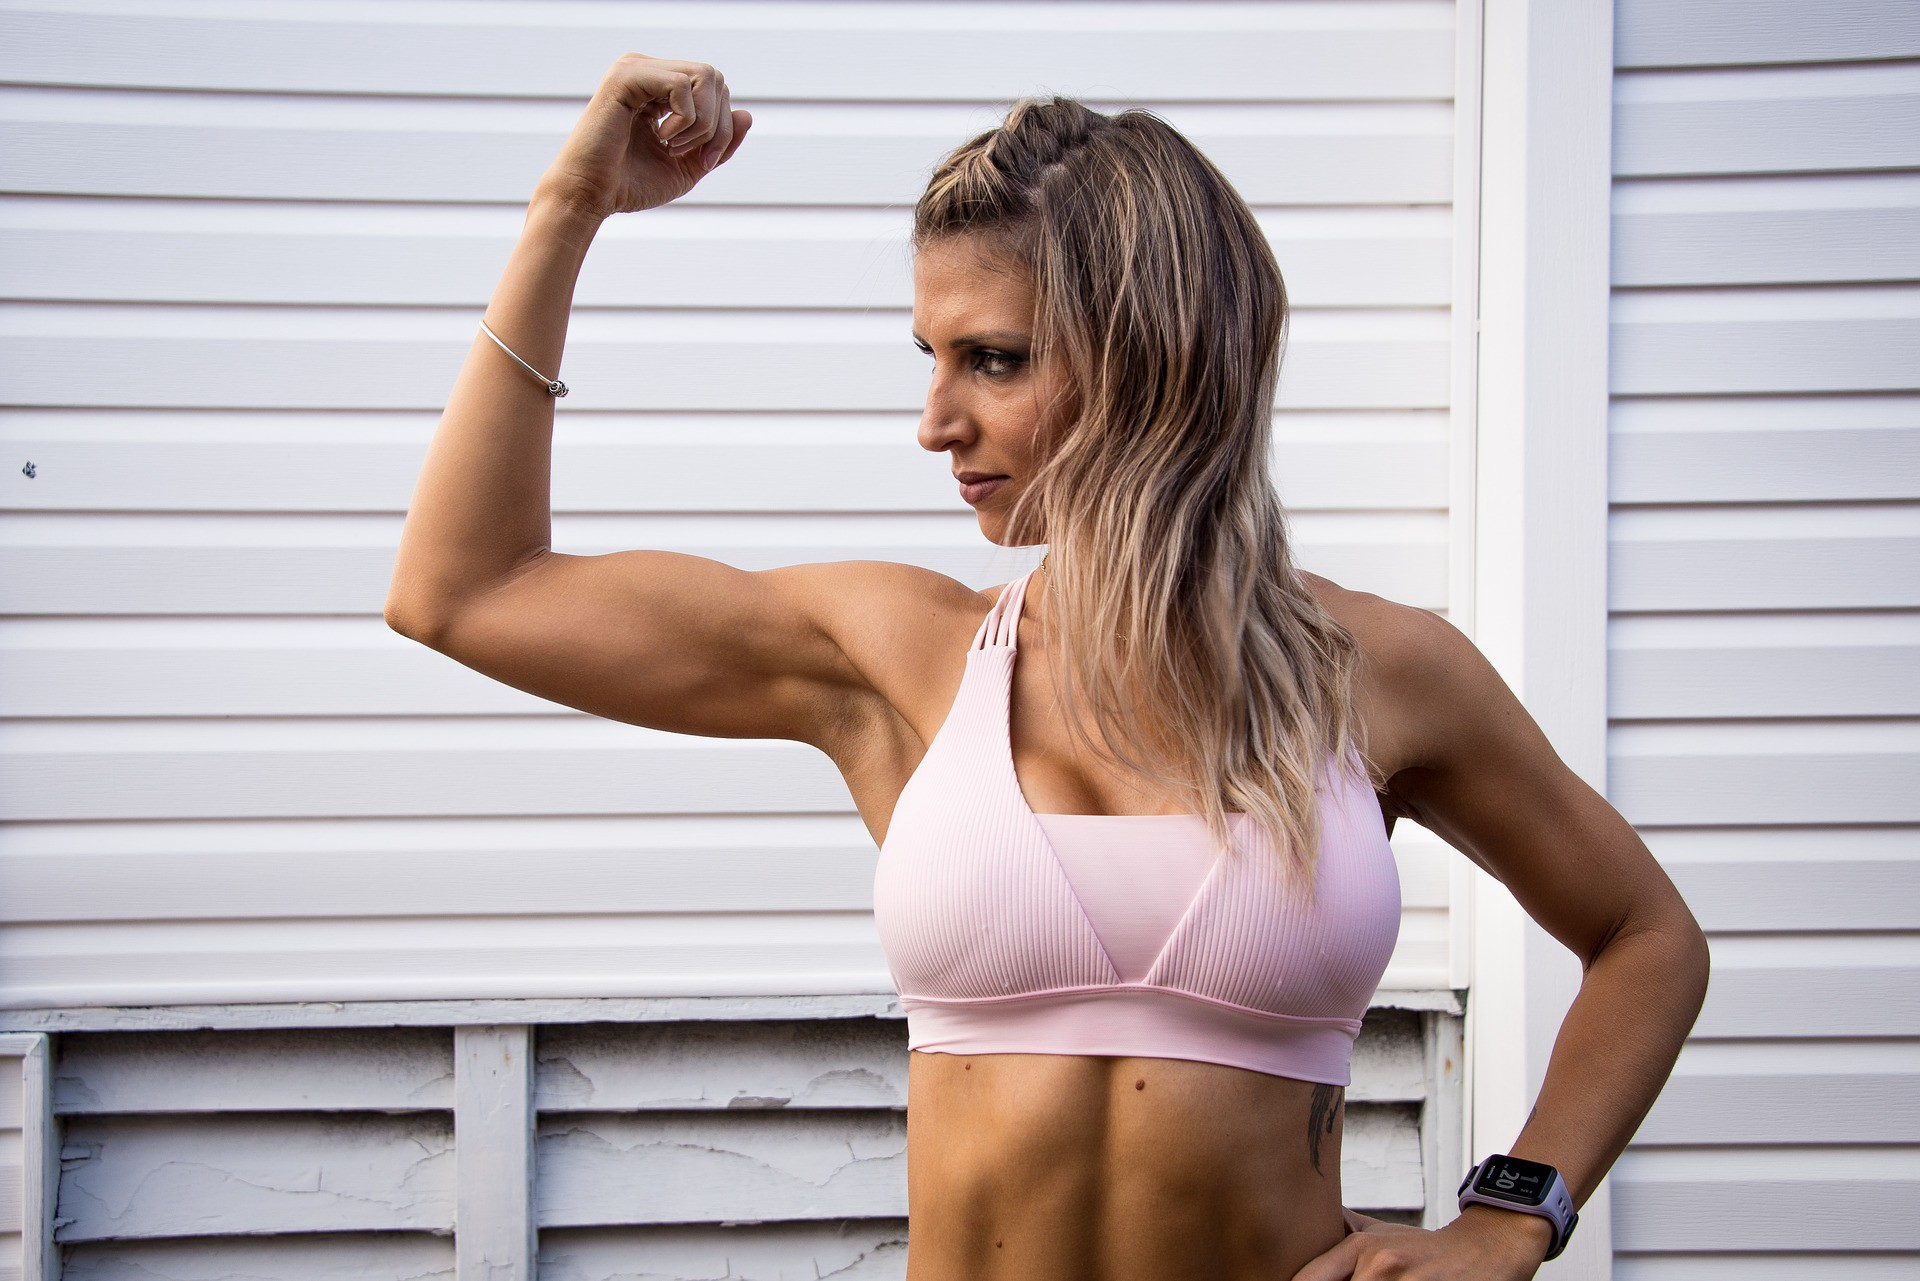 Athletic woman flexing her bicep.